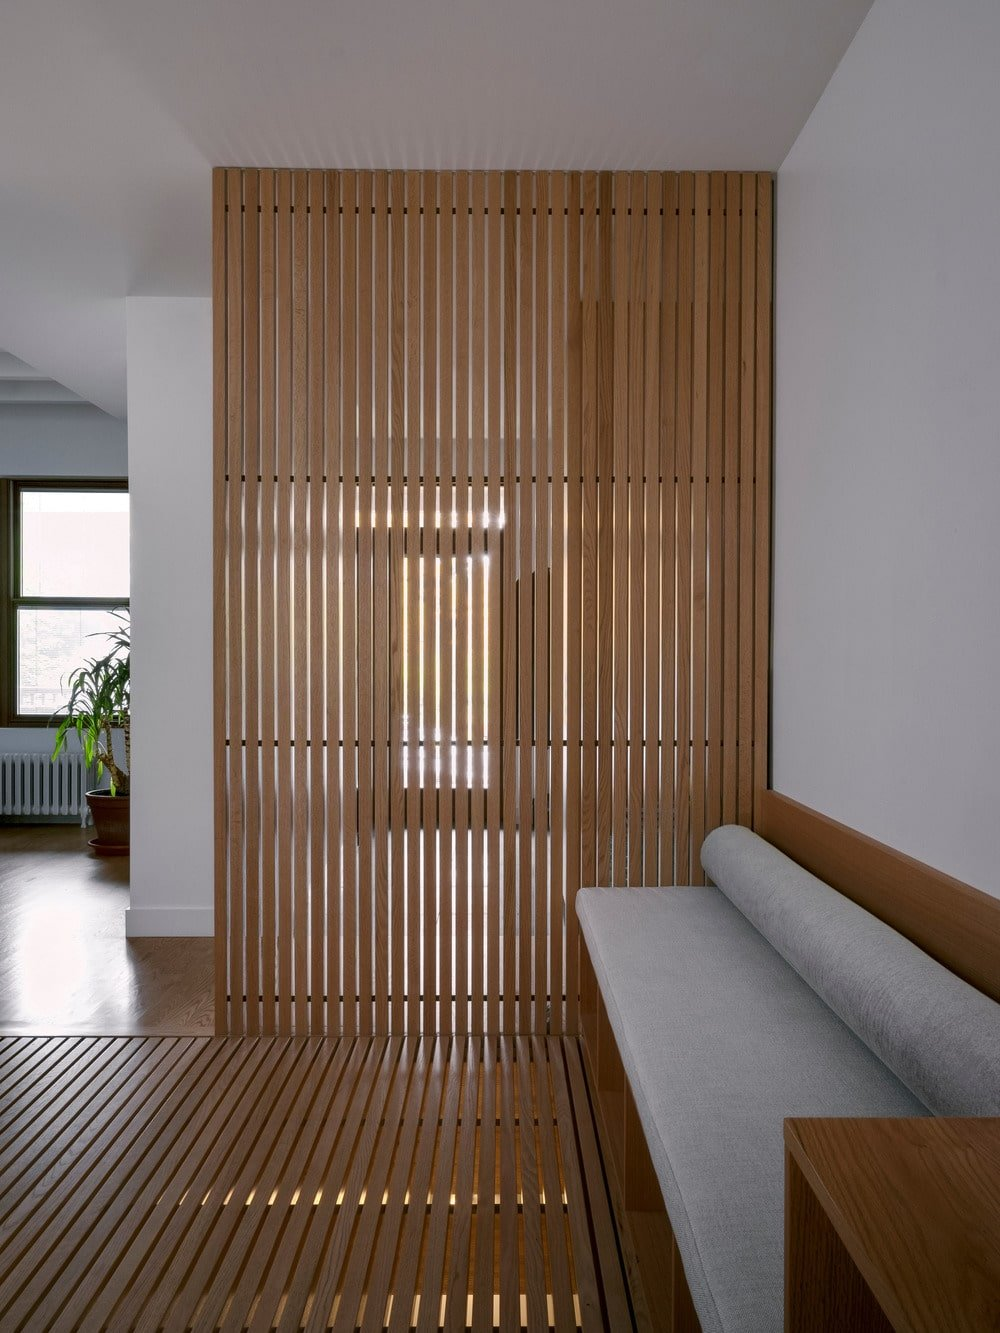 This is a closer look at the wooden slatted panel that extends its design to the flooring.